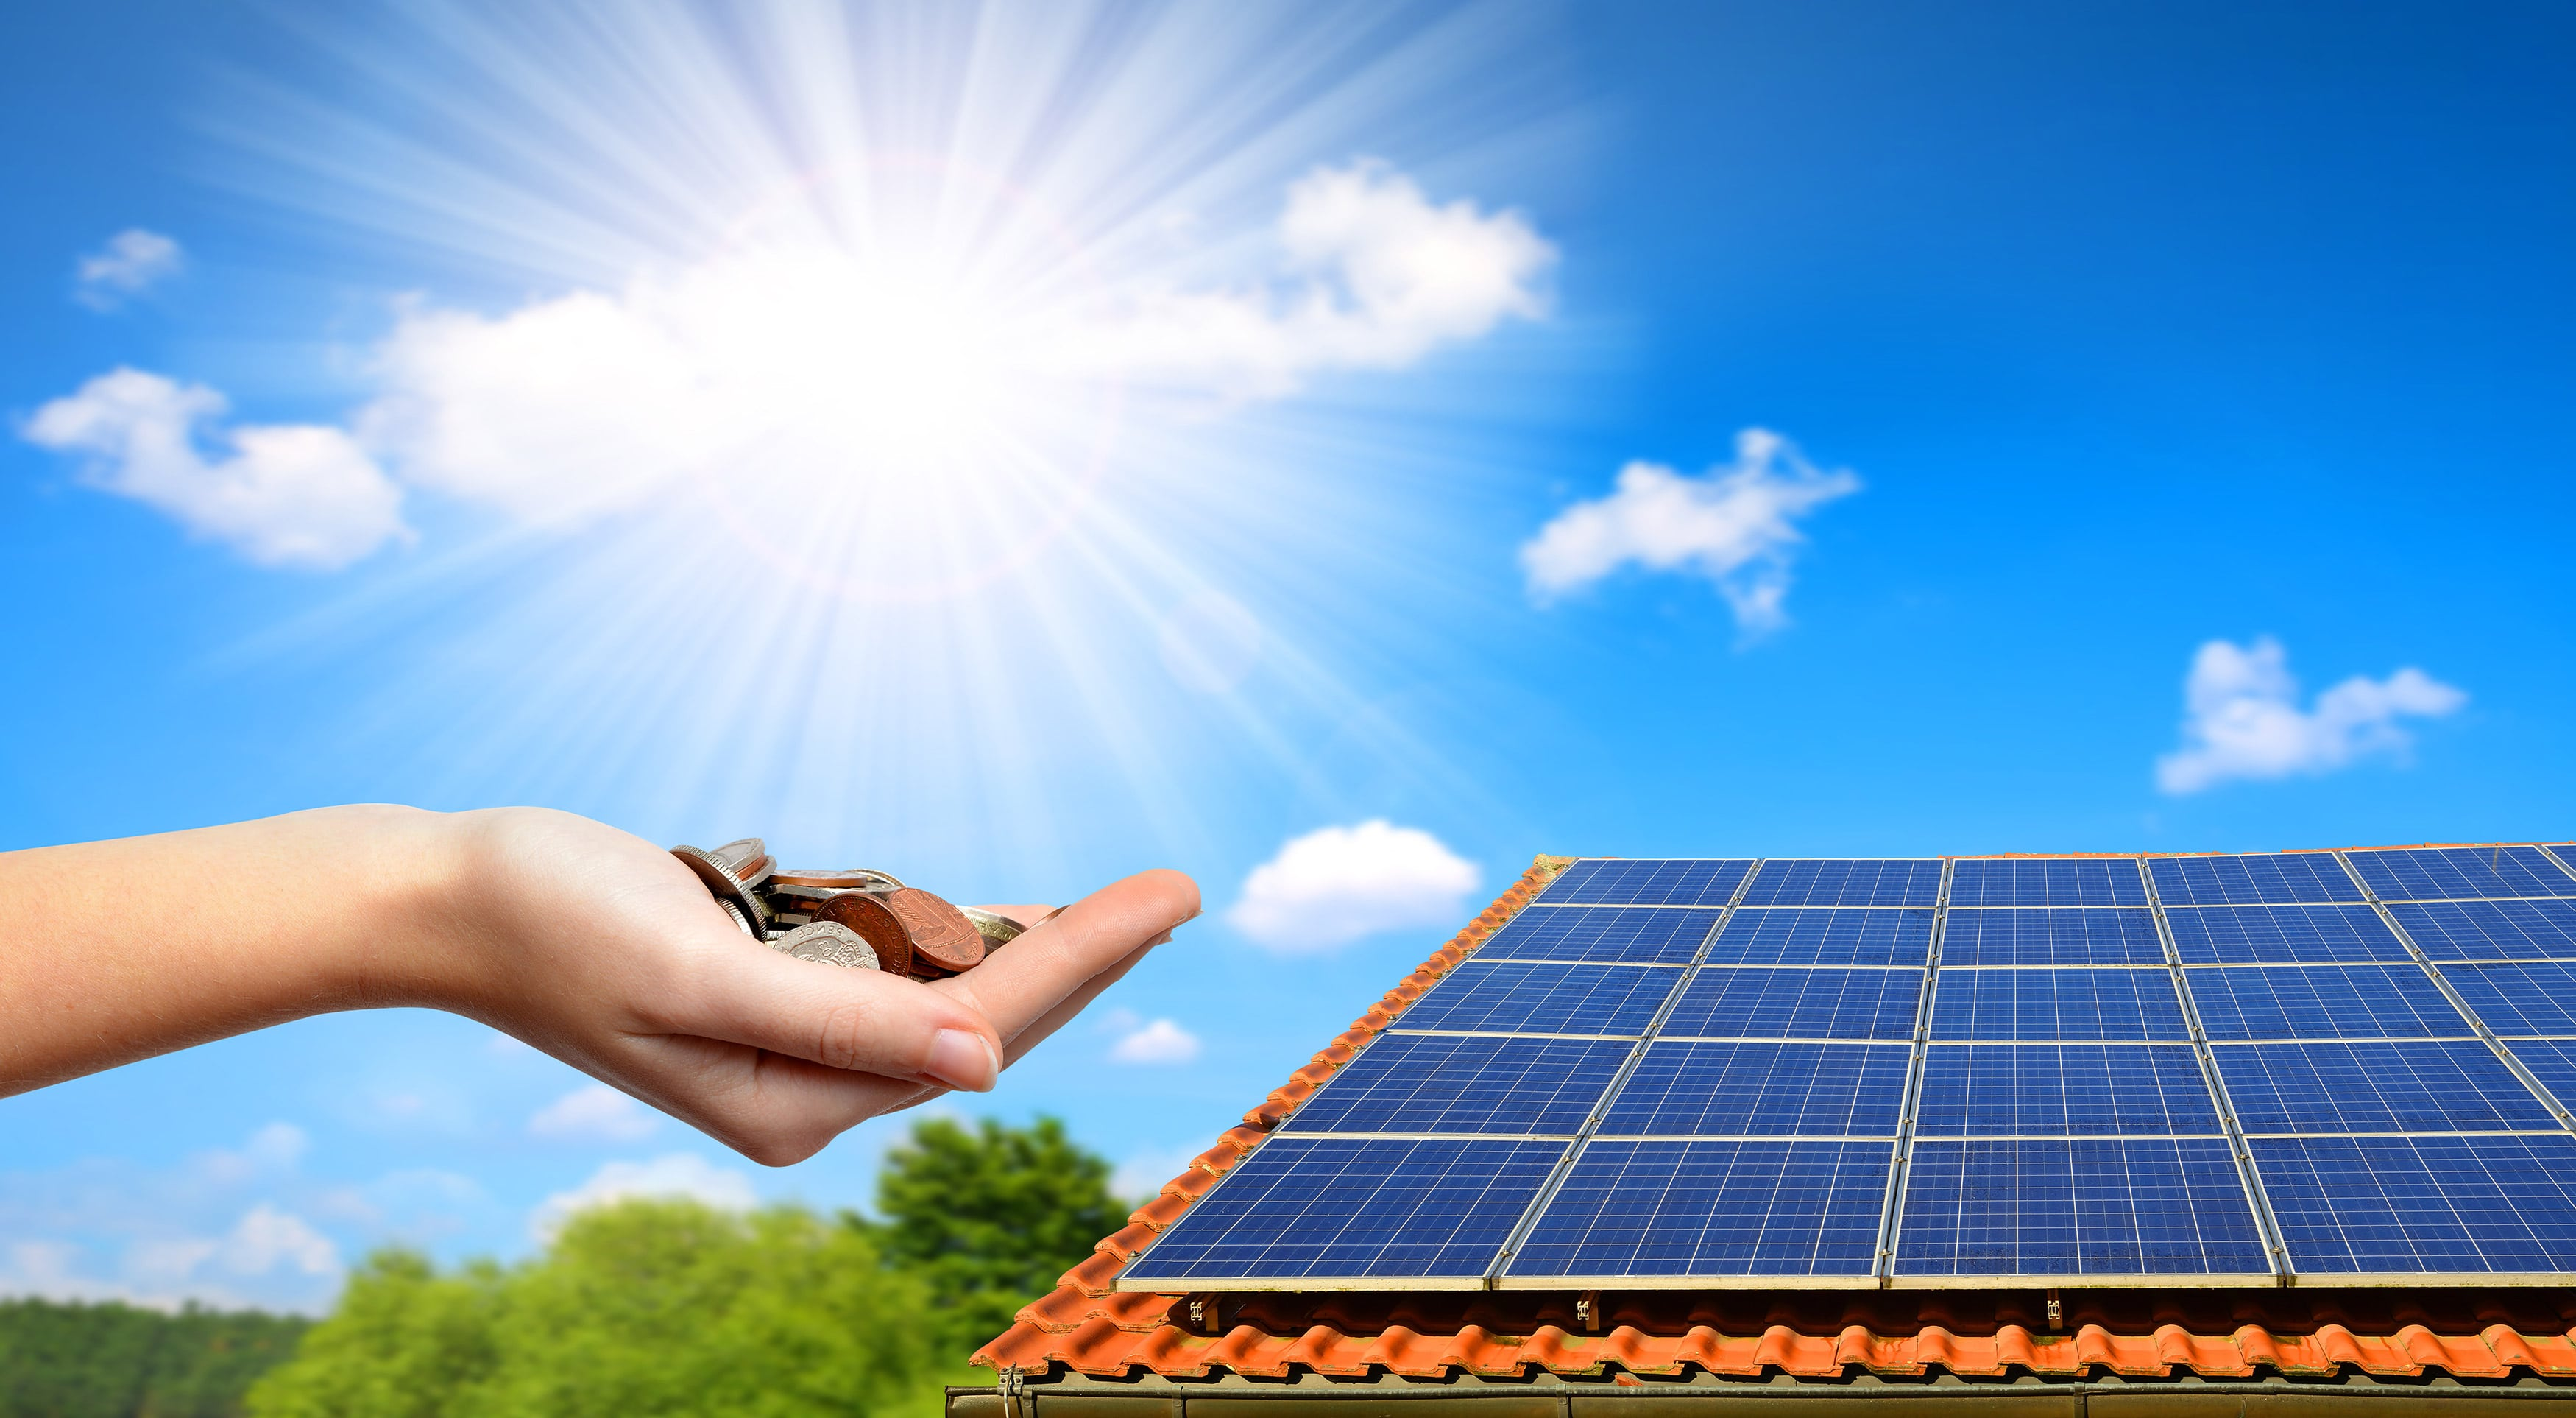 15 Benefits of Solar Energy - Clean Energy Ideas